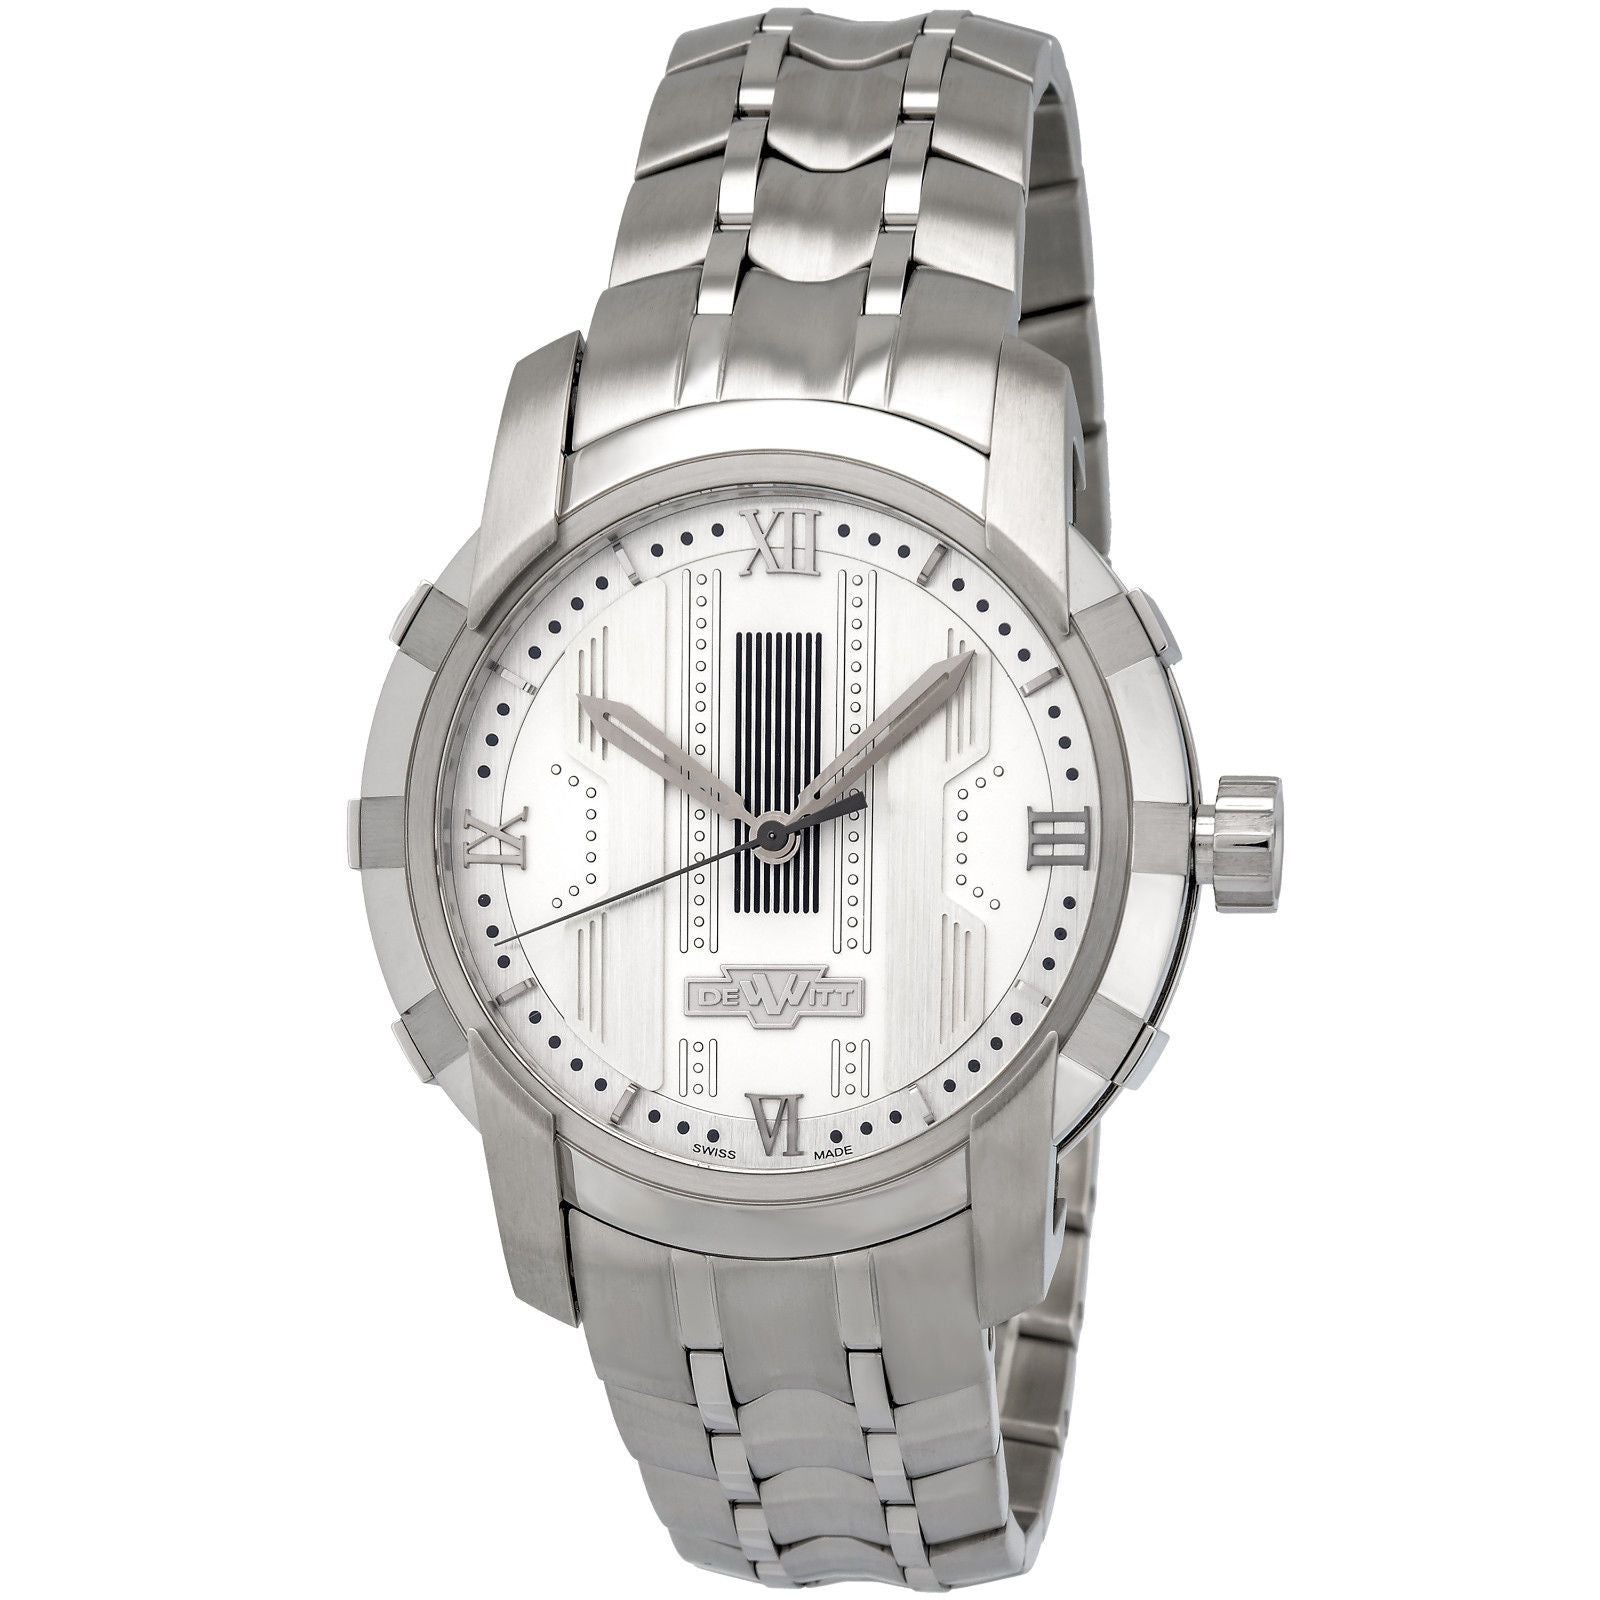 Glorious Knight Stainless Steel White FTV.HMS.002.S Automatic Men's Watch-Luxury Watches | Mens And Ladies Luxury Watches | Upscale Time